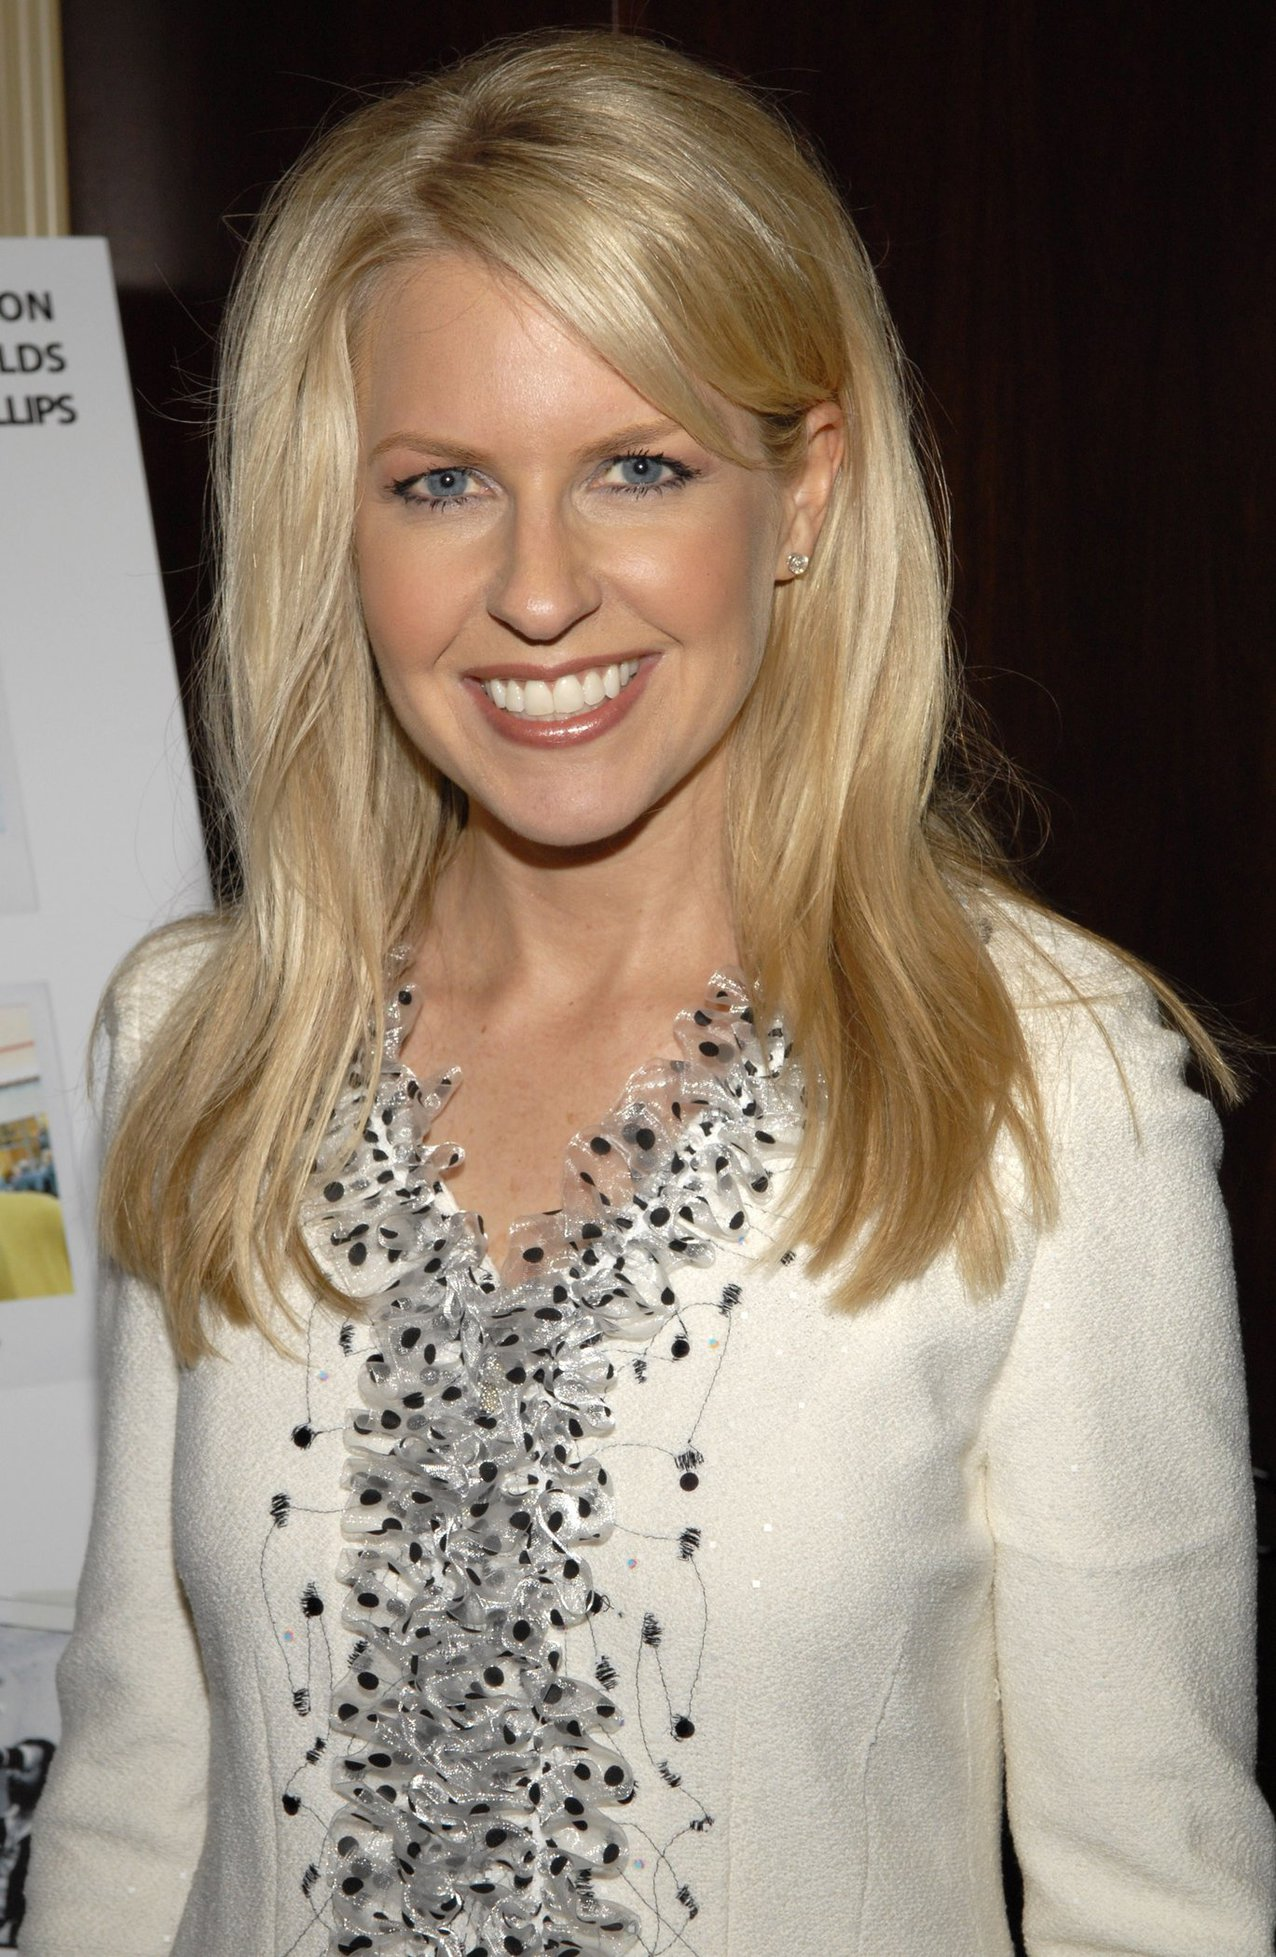 how tall is monica crowley